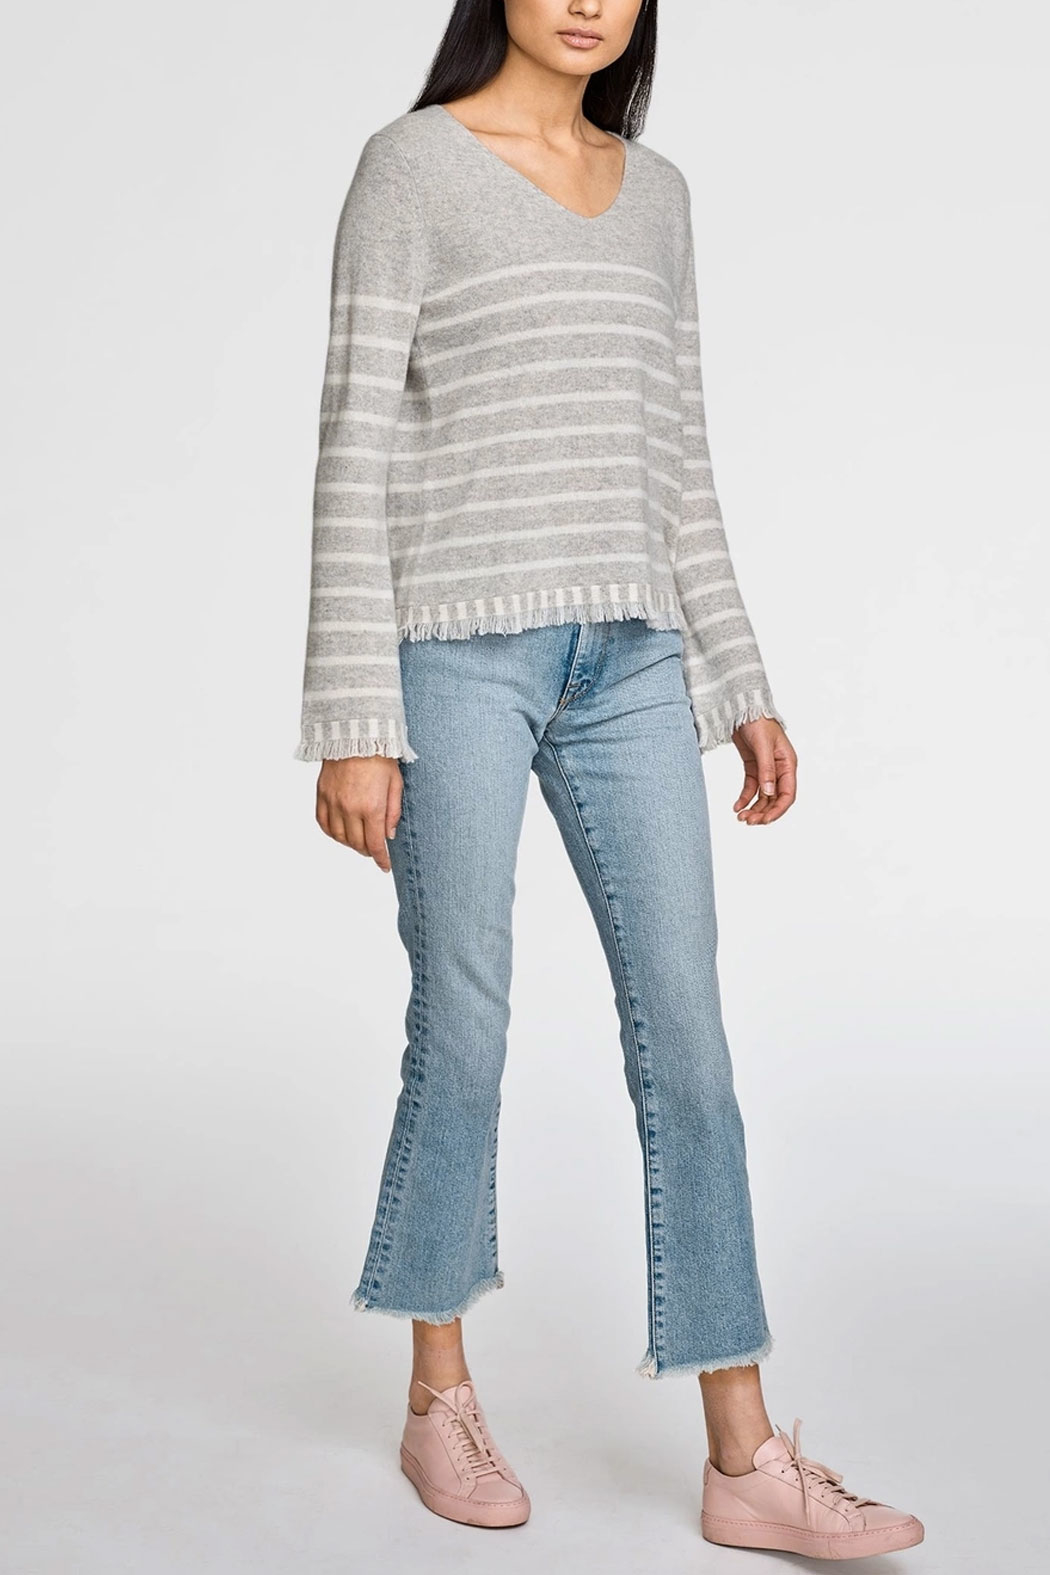 White + Warren Striped Fringe V-Neck Sweater - Front Full Image